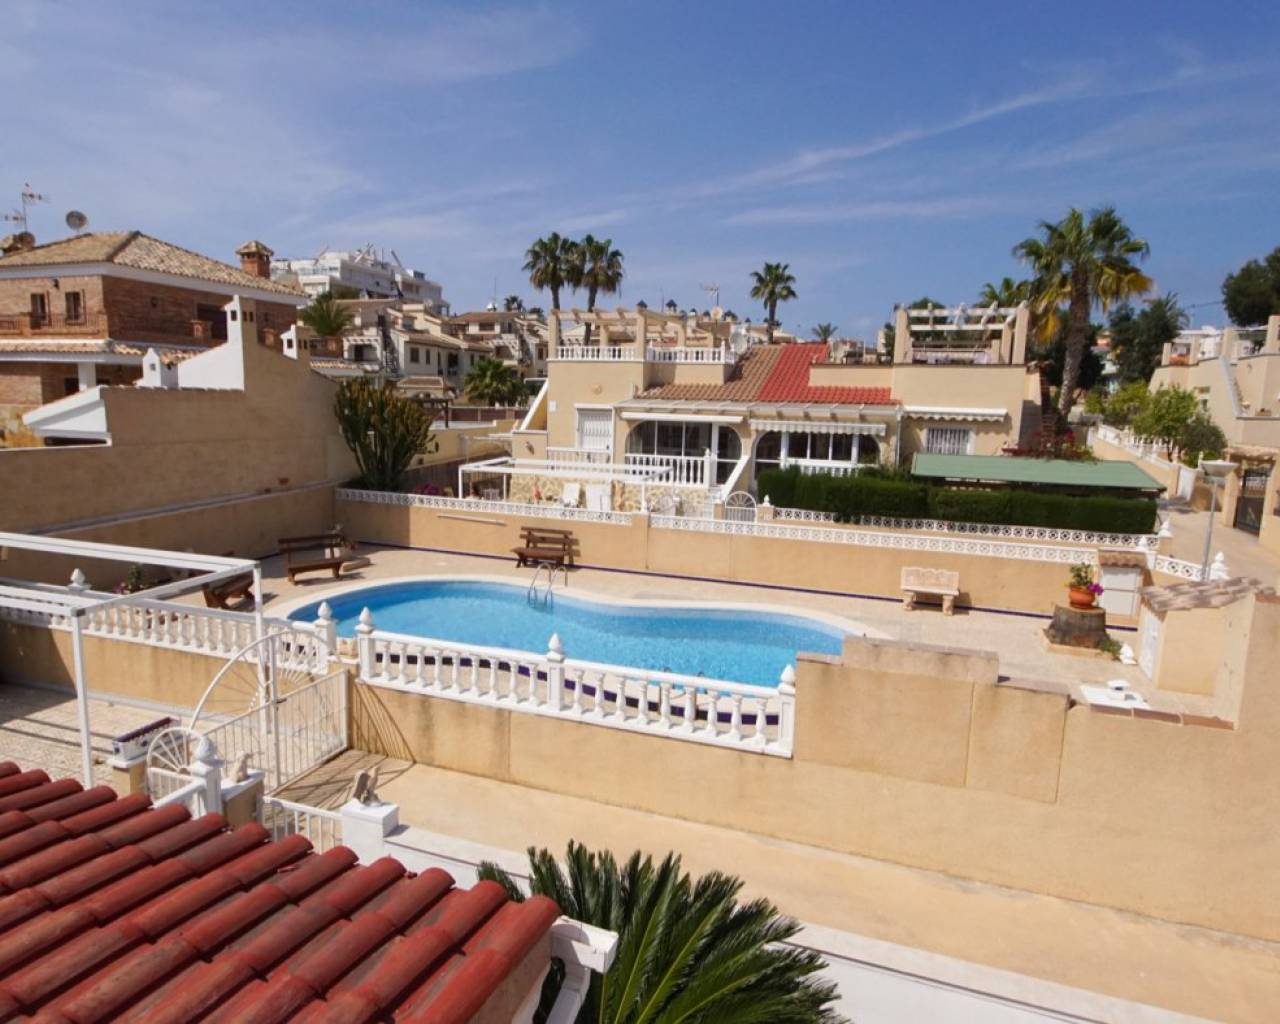 Sale - Ground floor - Torrevieja - Cabo cervera